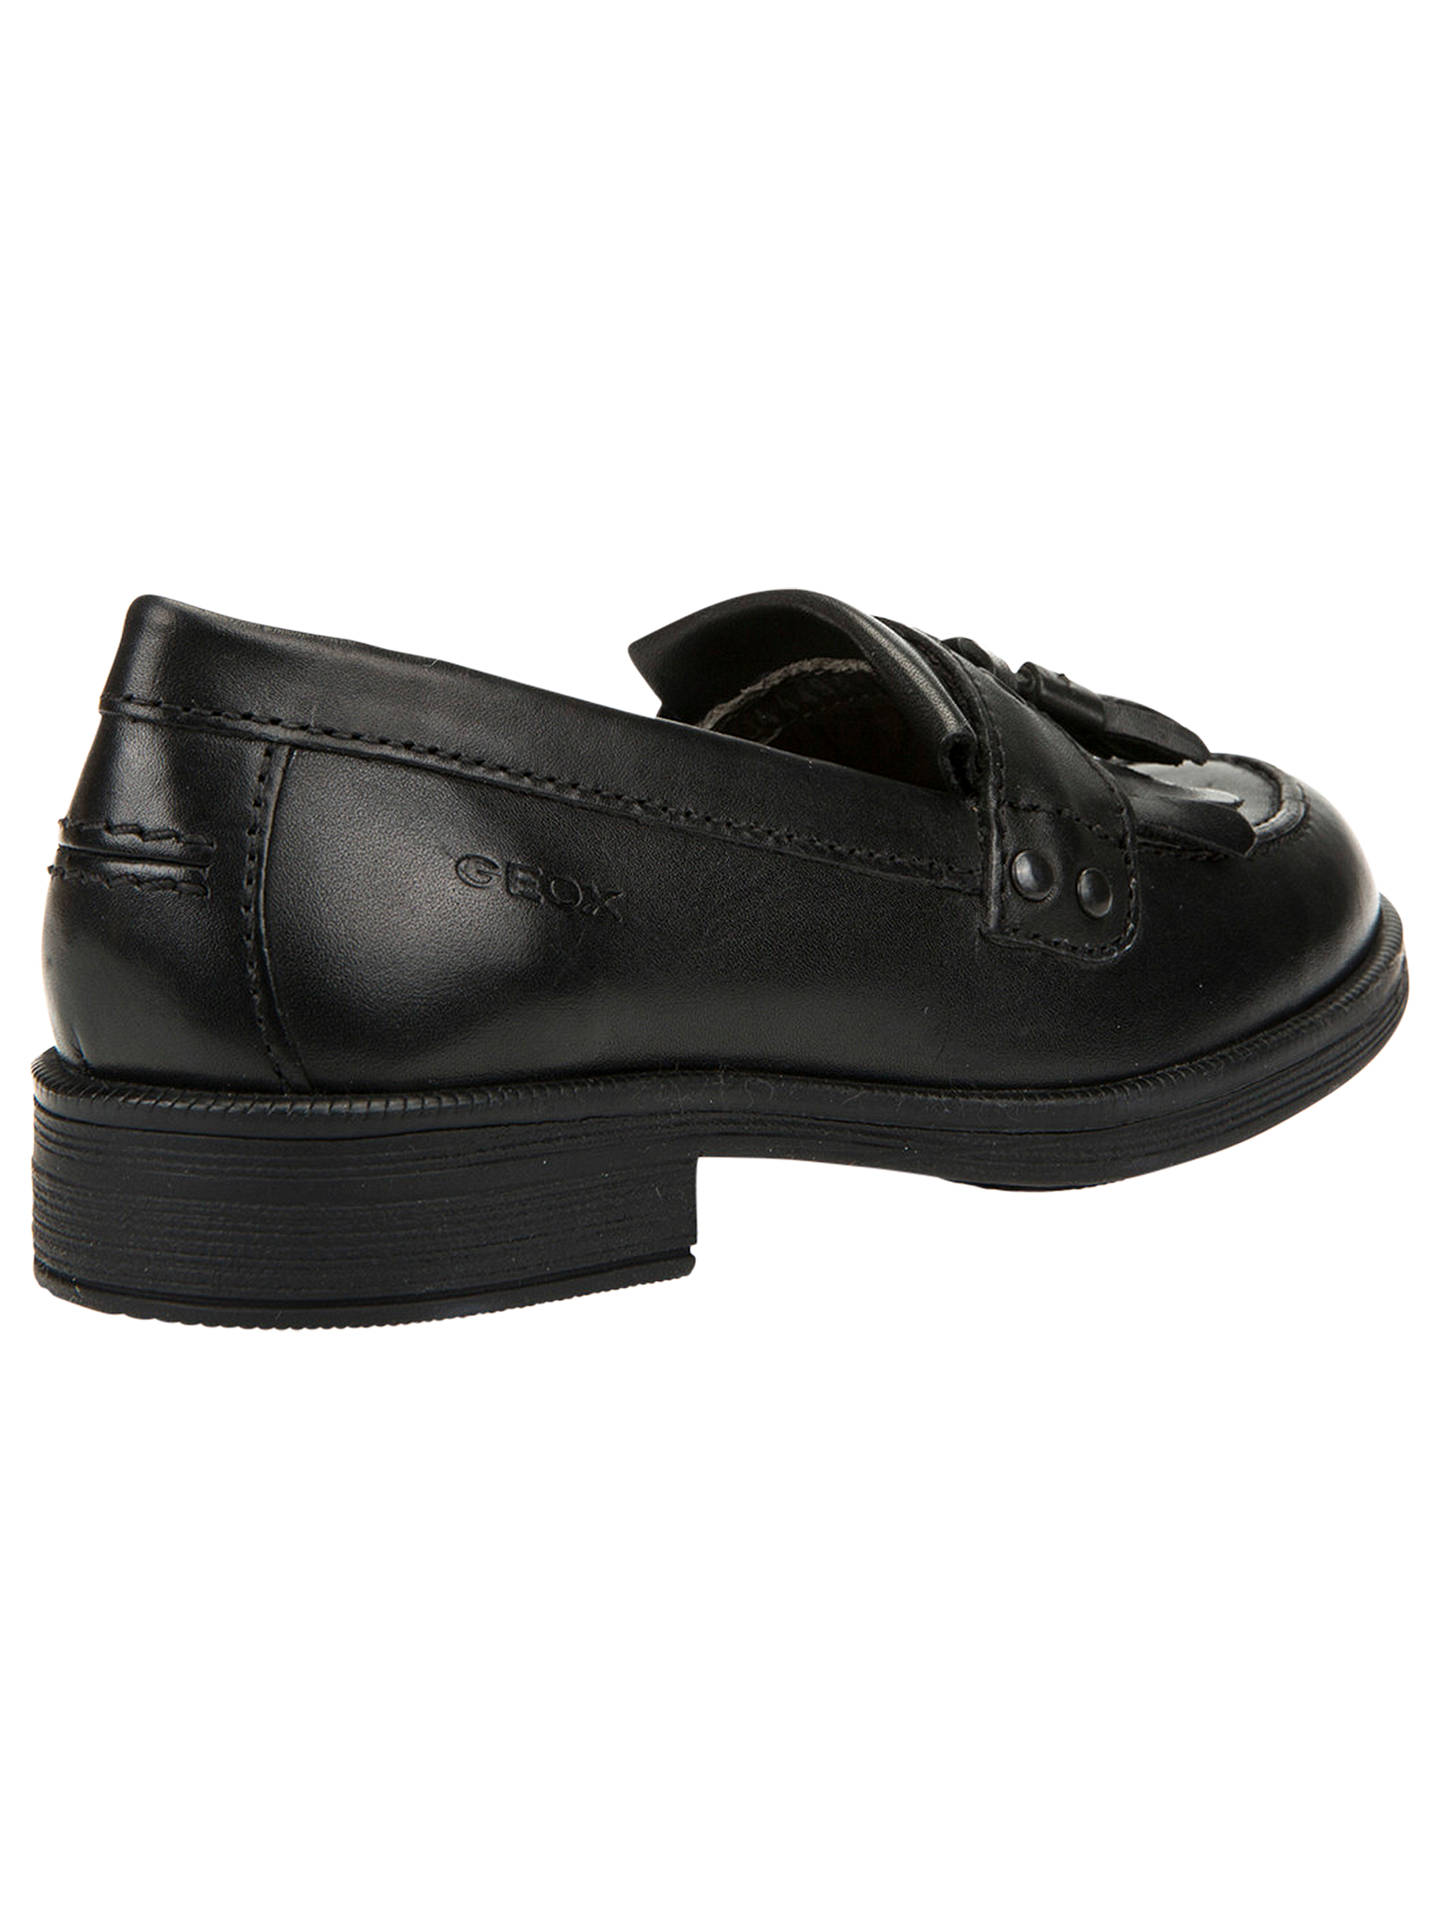 3abd2fc7158 ... Buy Geox Children's Agata Tassel Leather Loafers, Black, 30 Online at  johnlewis. ...